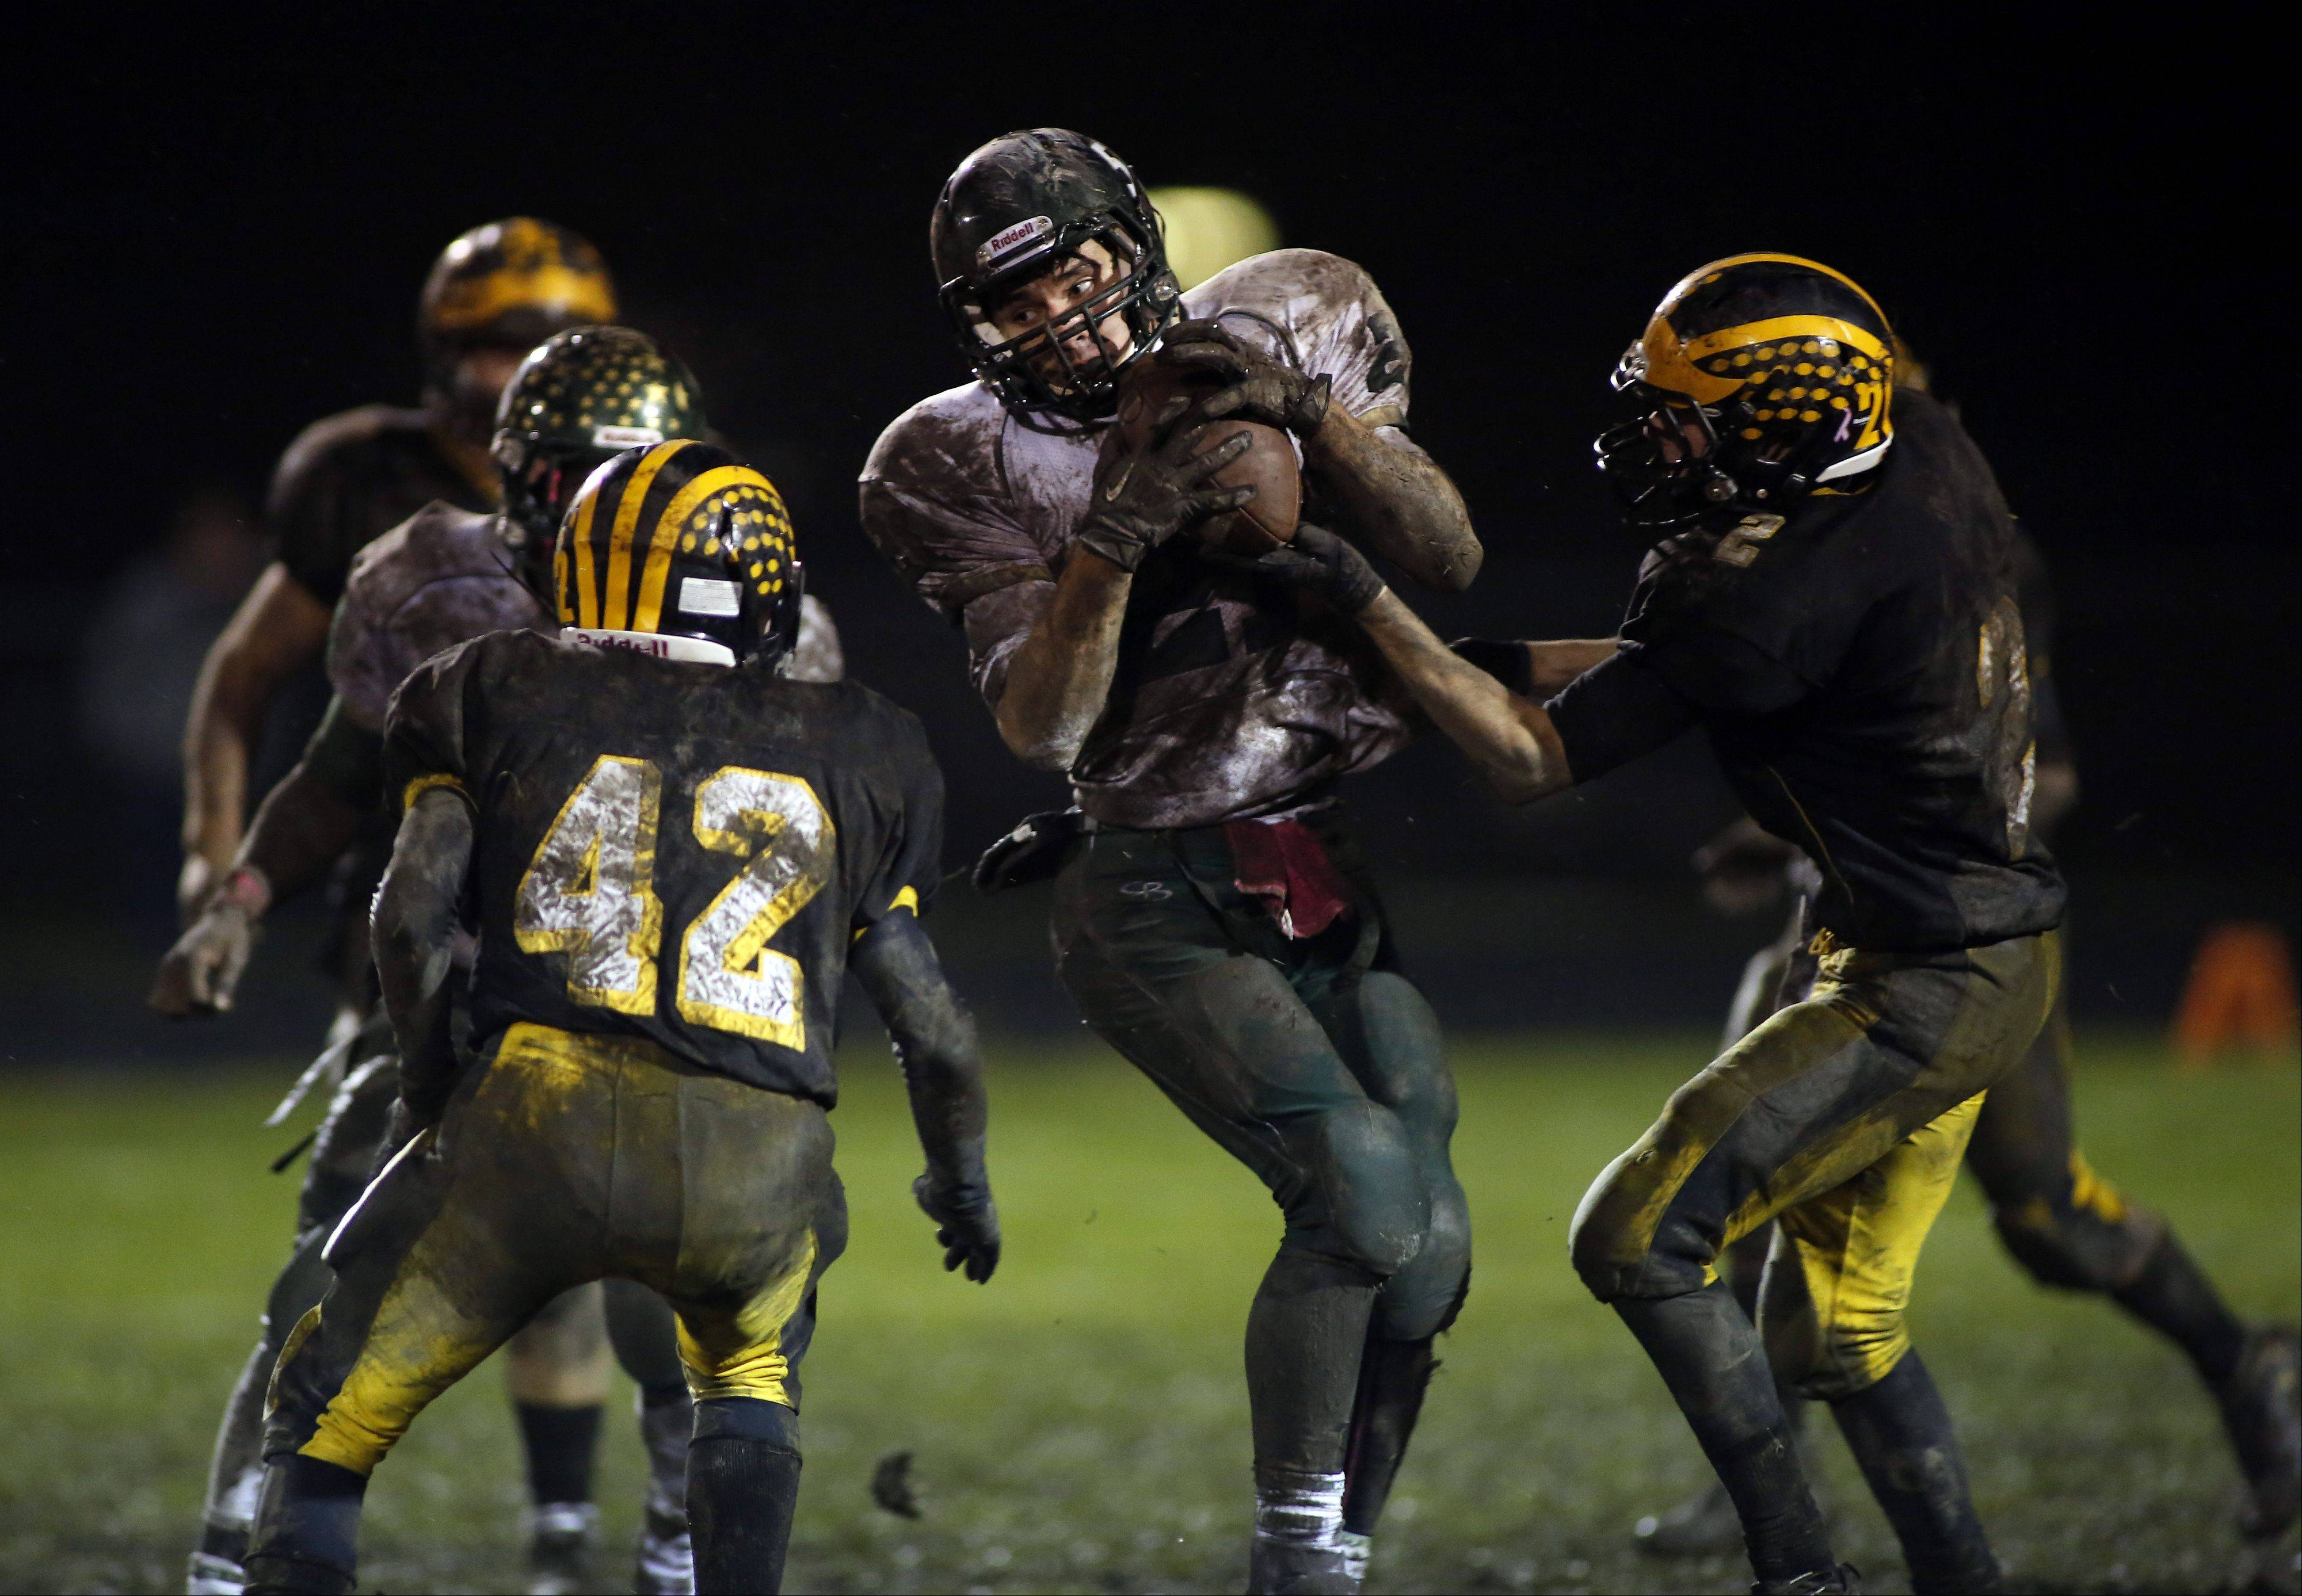 Images: Harvard vs. St. Edward football